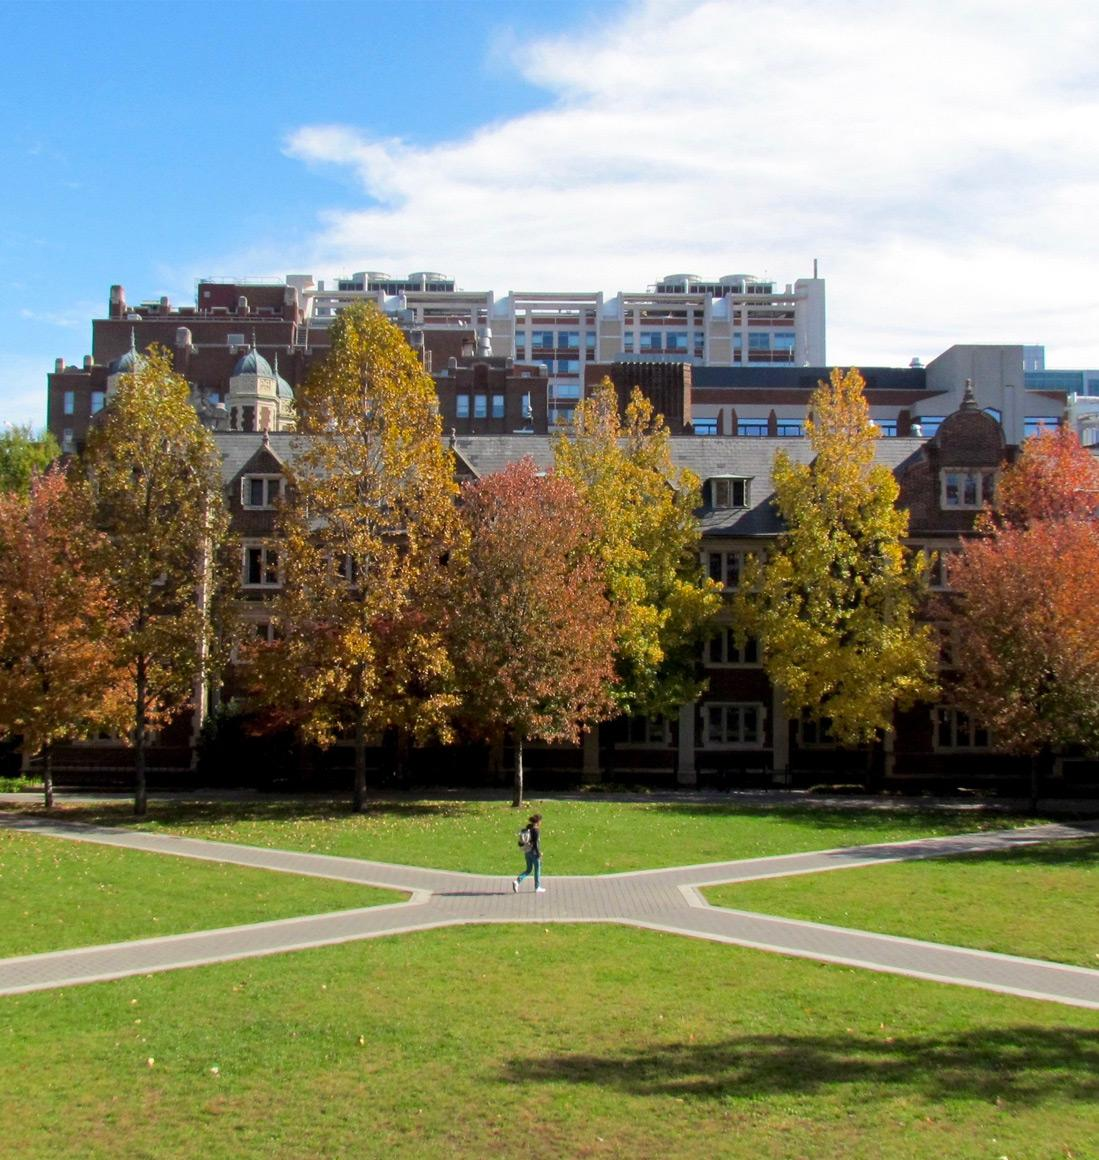 photo of Penn's campus